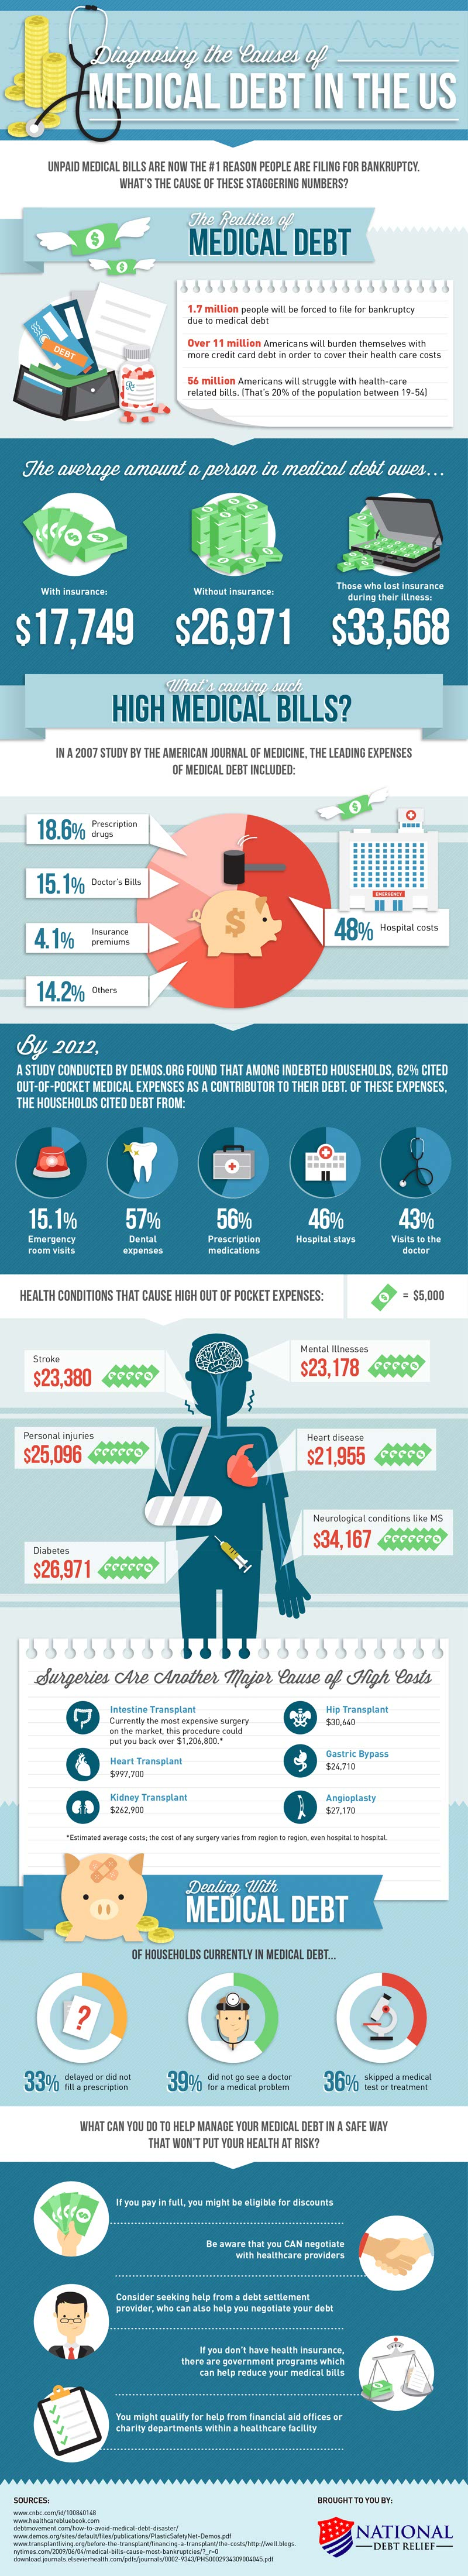 Medical Debt in the US-Infographic